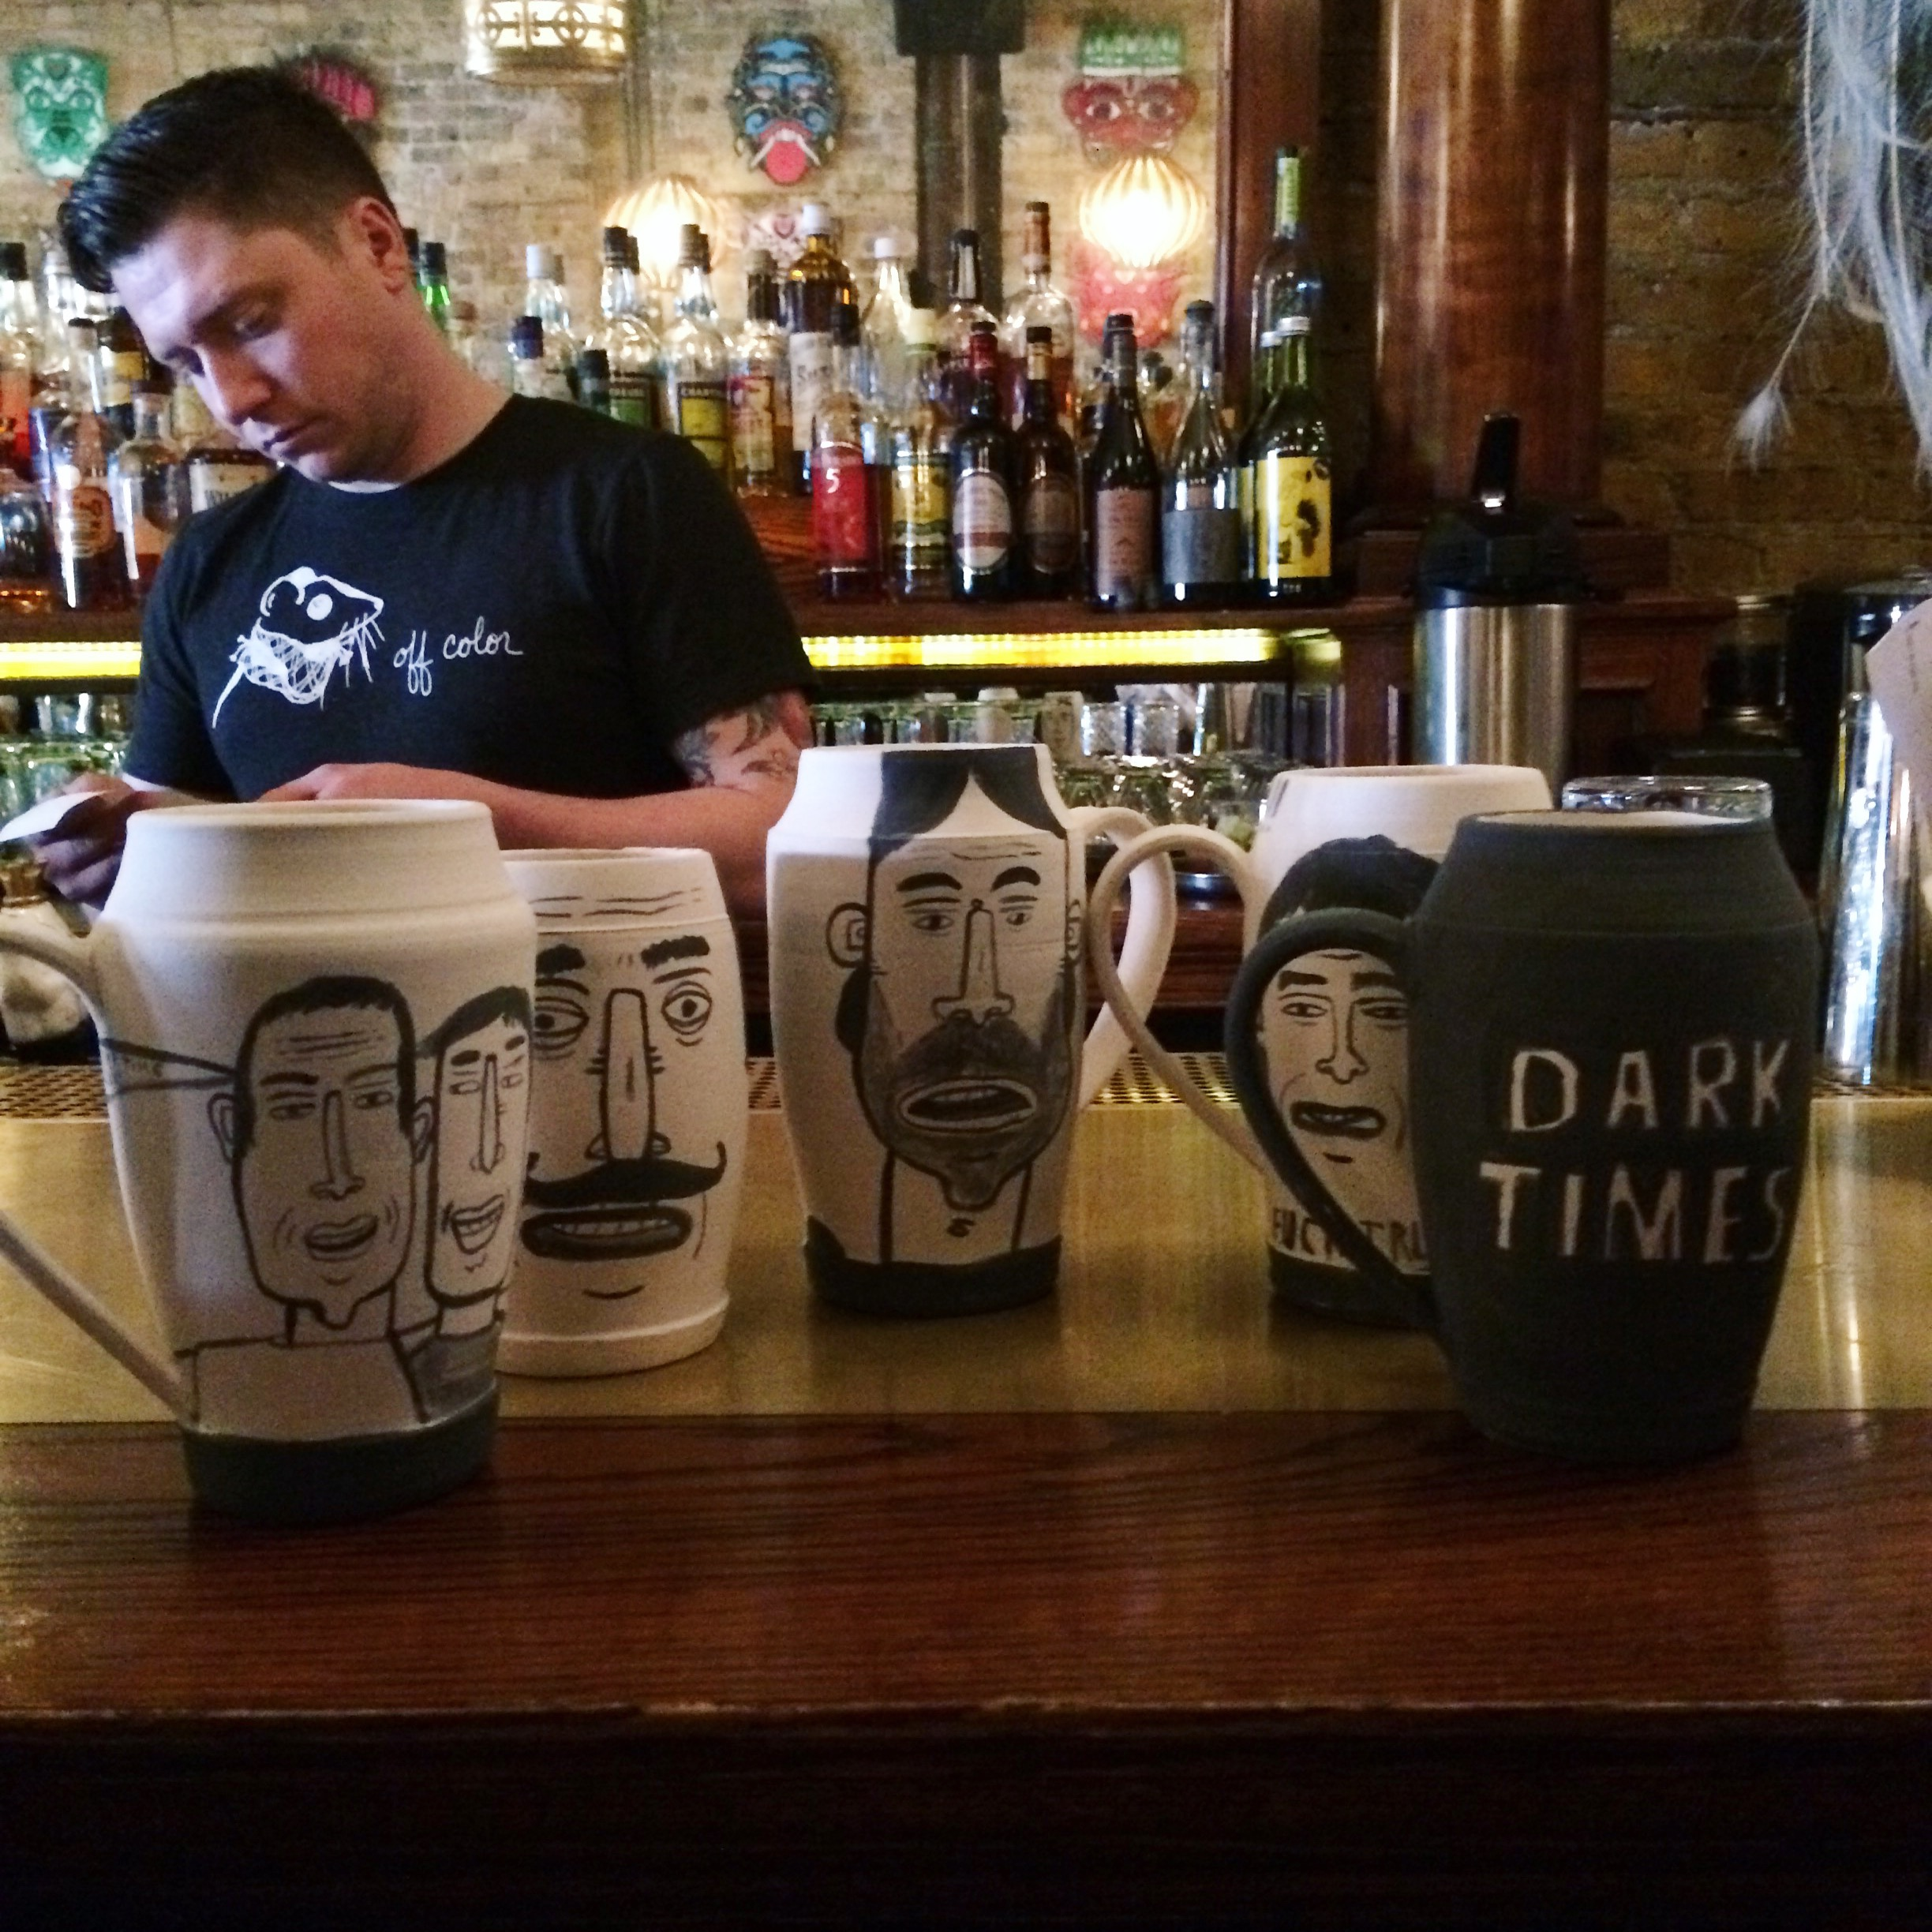 Mugs by Don't Fret at Gold Star